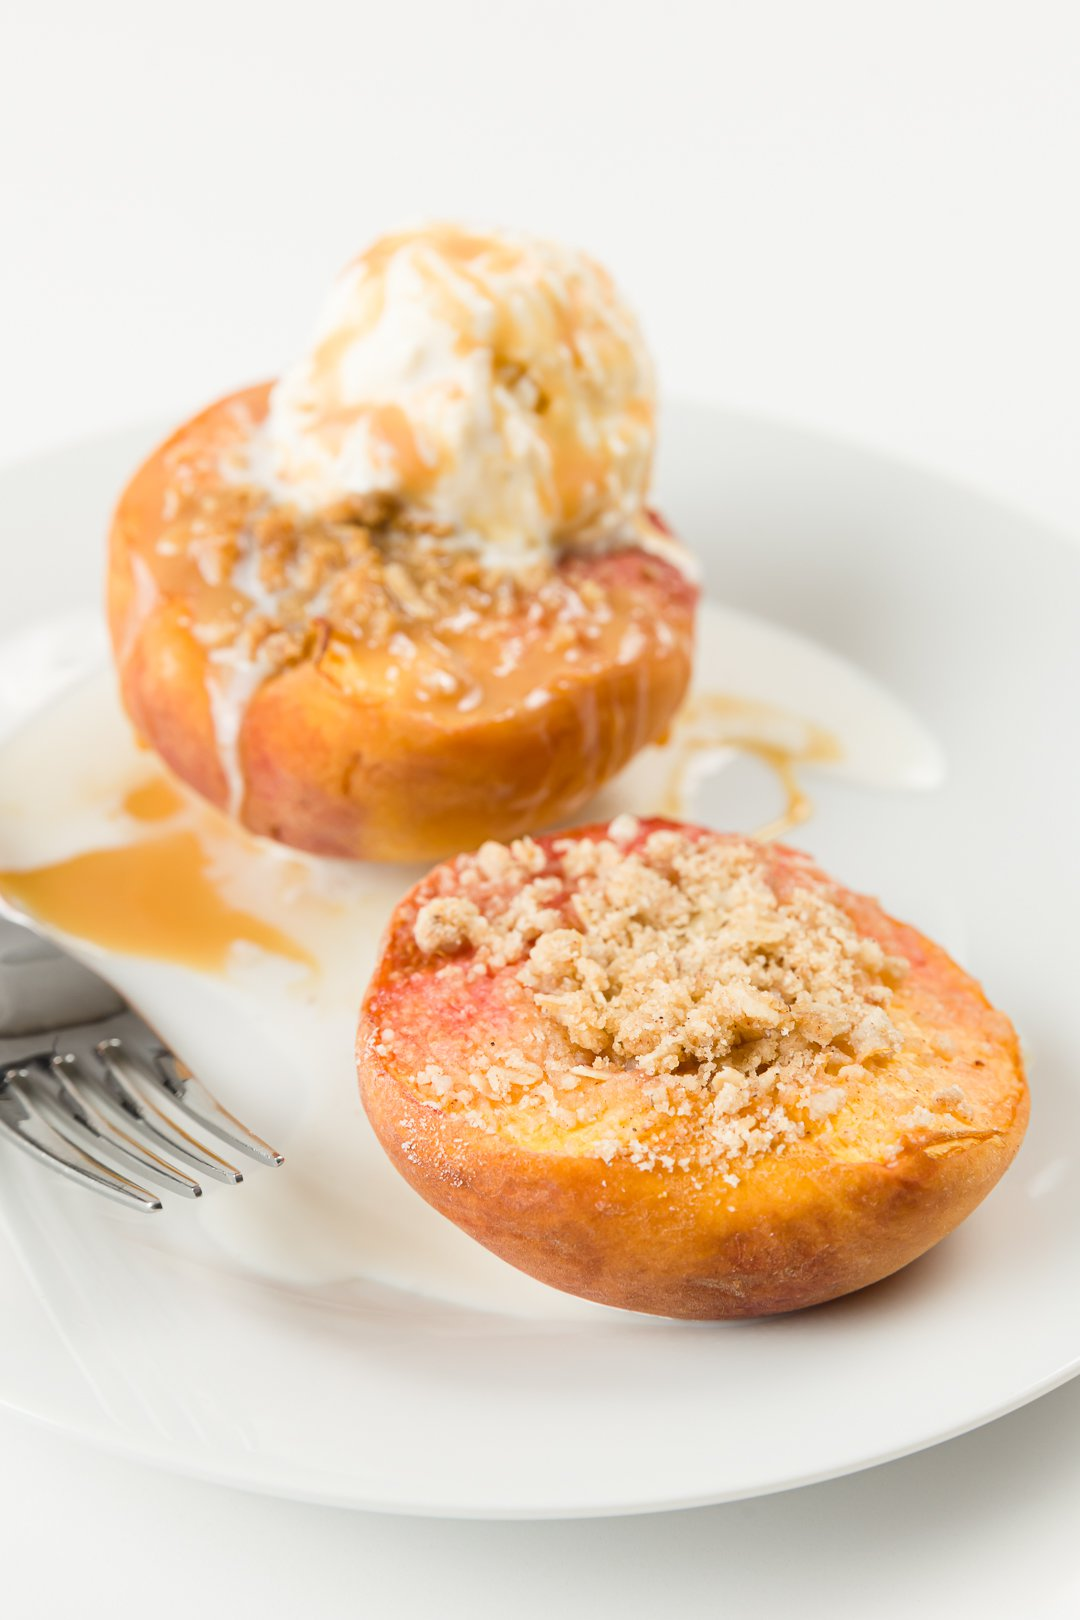 Baked Peaches with crumb topping and ice cream